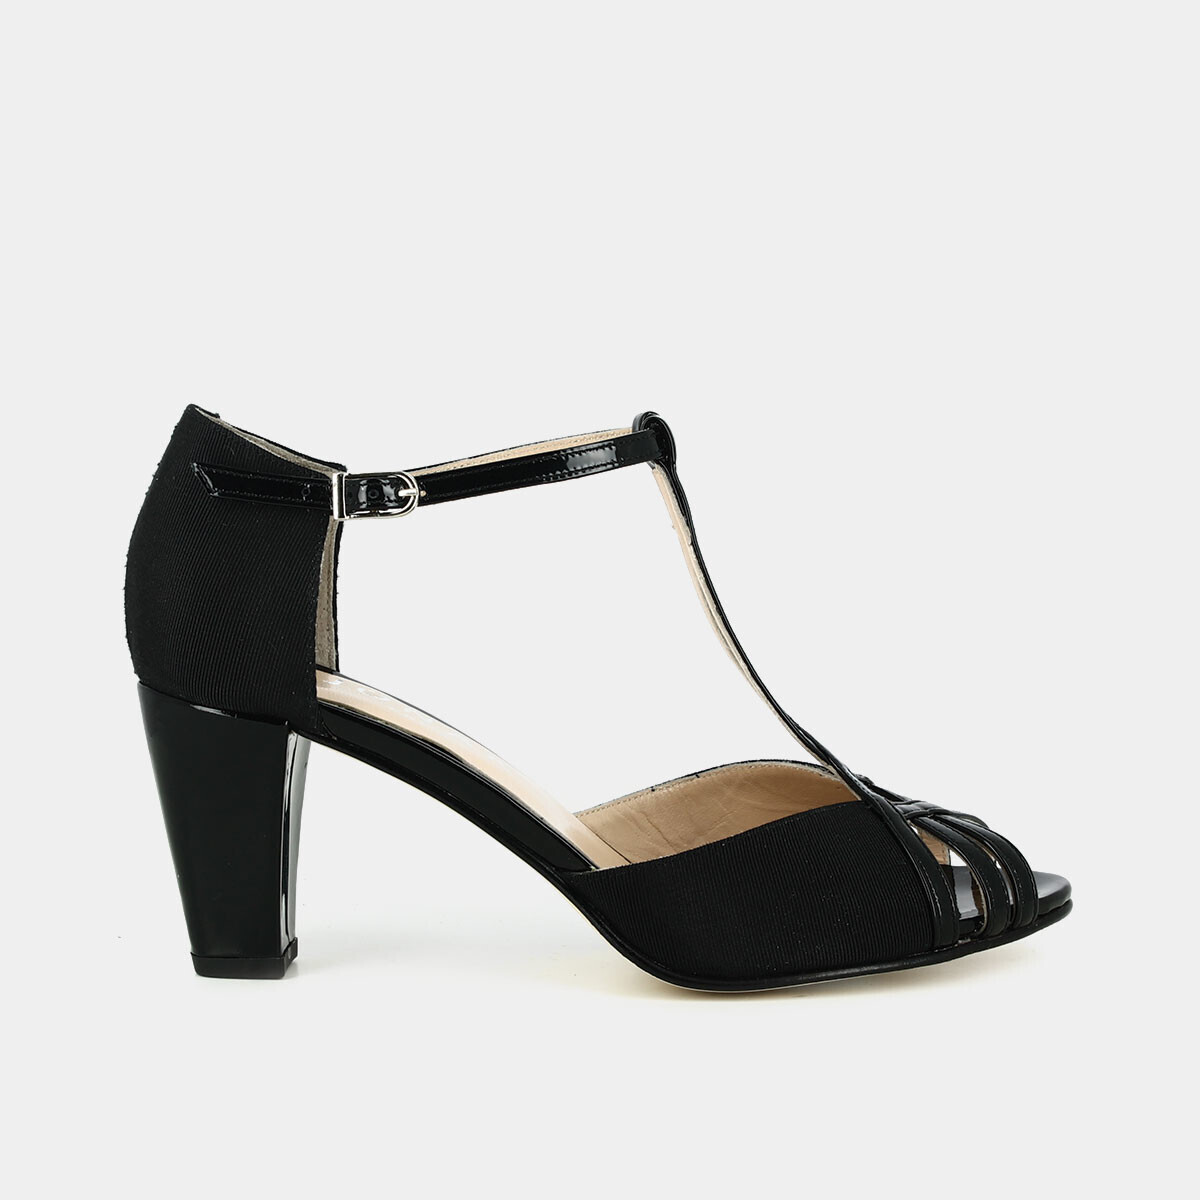 d6cd7418331 Blended material T-bar shoes in black patent leather and textile - Jonak  noir